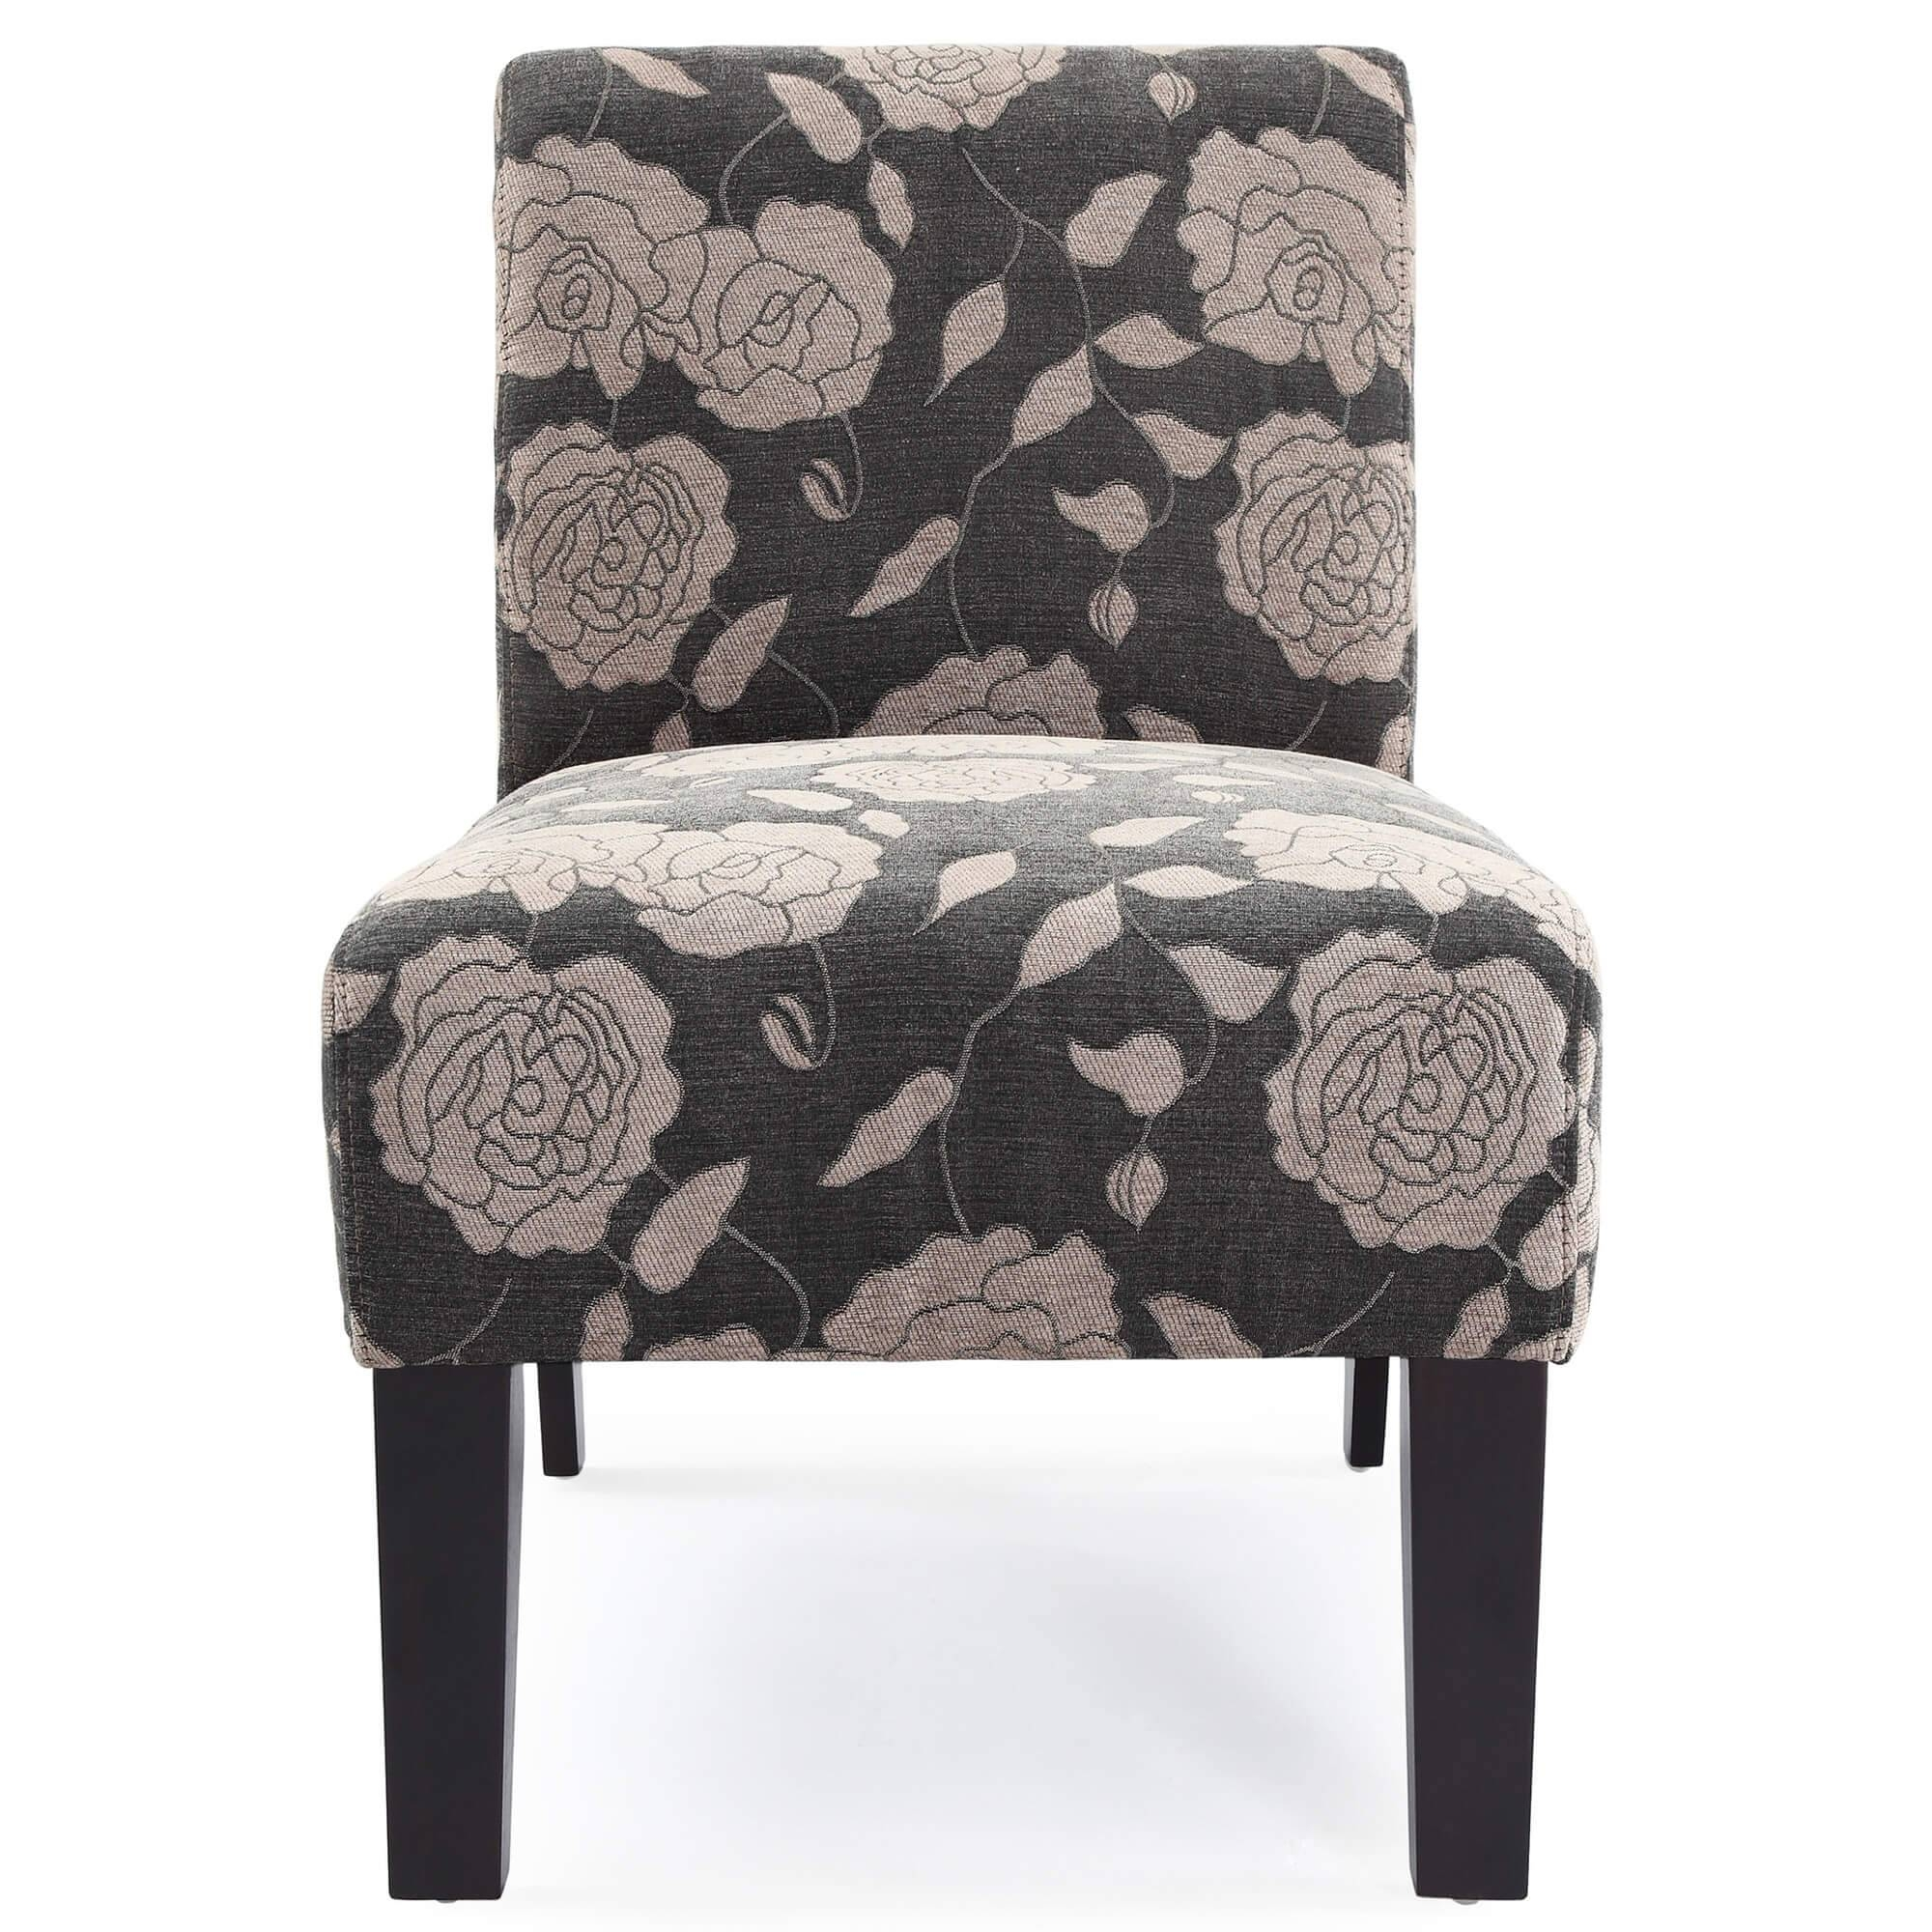 Decor: Using Accent Chairs Under 100 For Comfy Home Furniture with regard to Small Armchairs Small Spaces (Image 13 of 30)